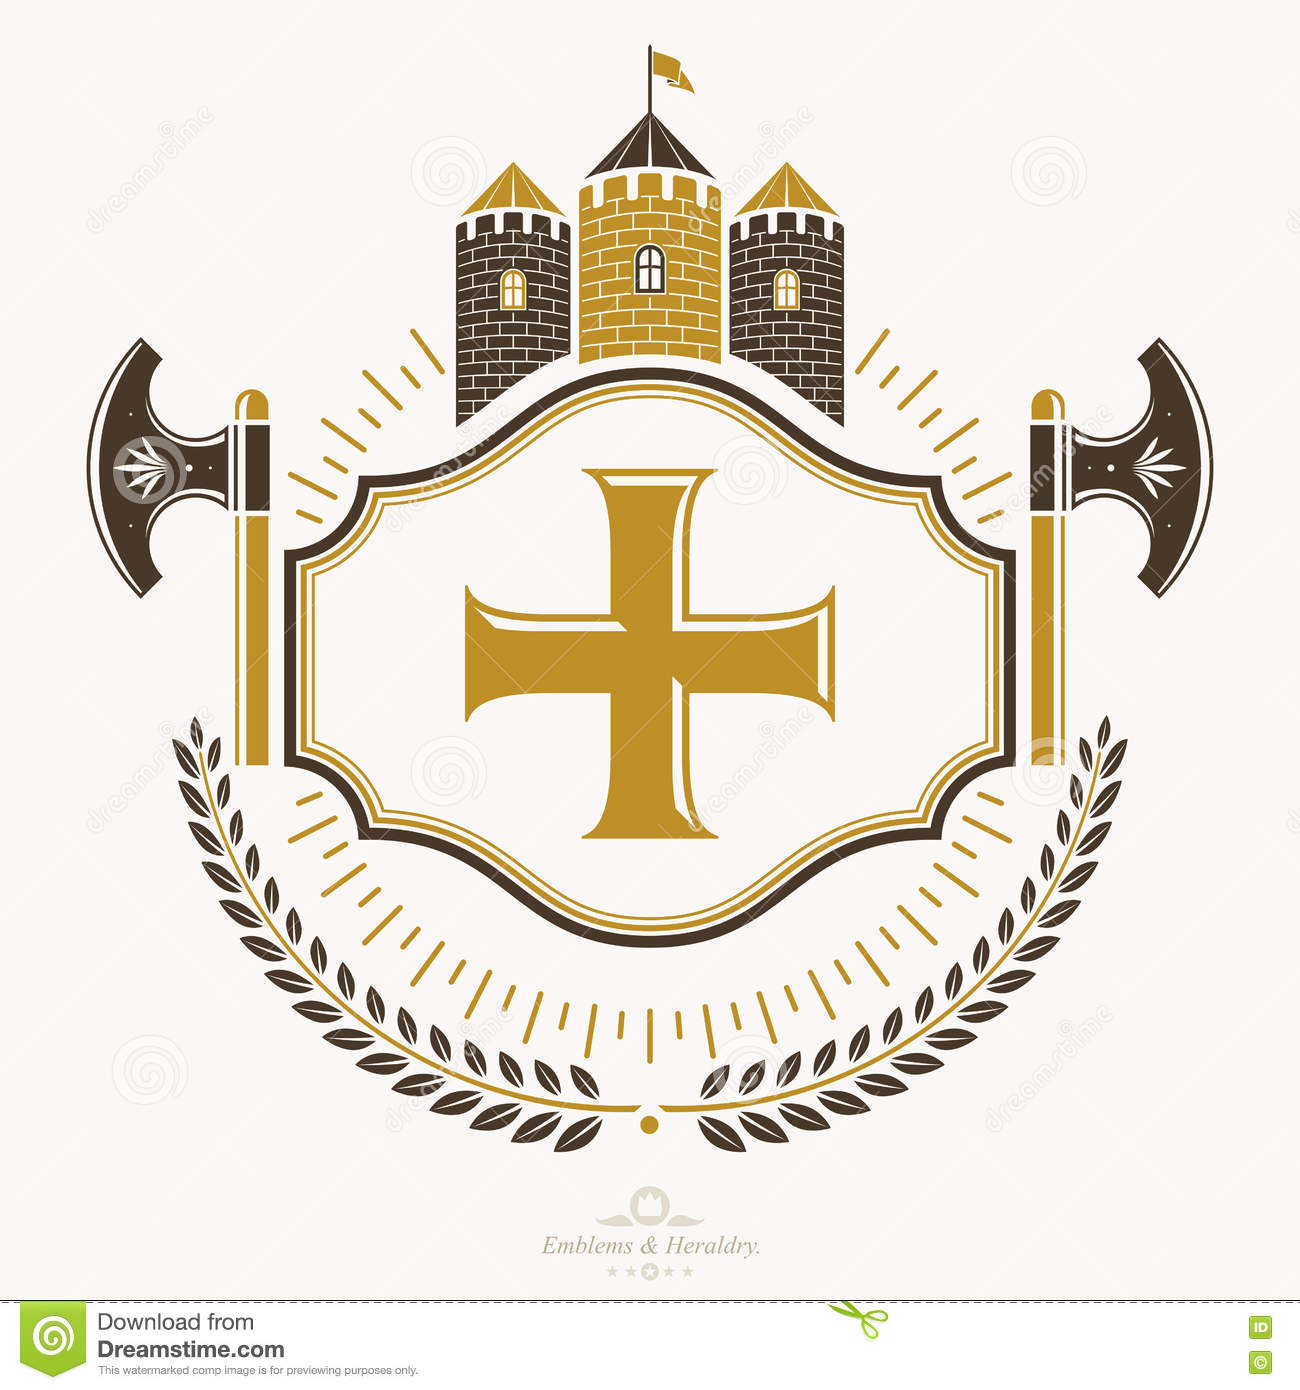 heraldic coat of arms vintage emblem stock illustration